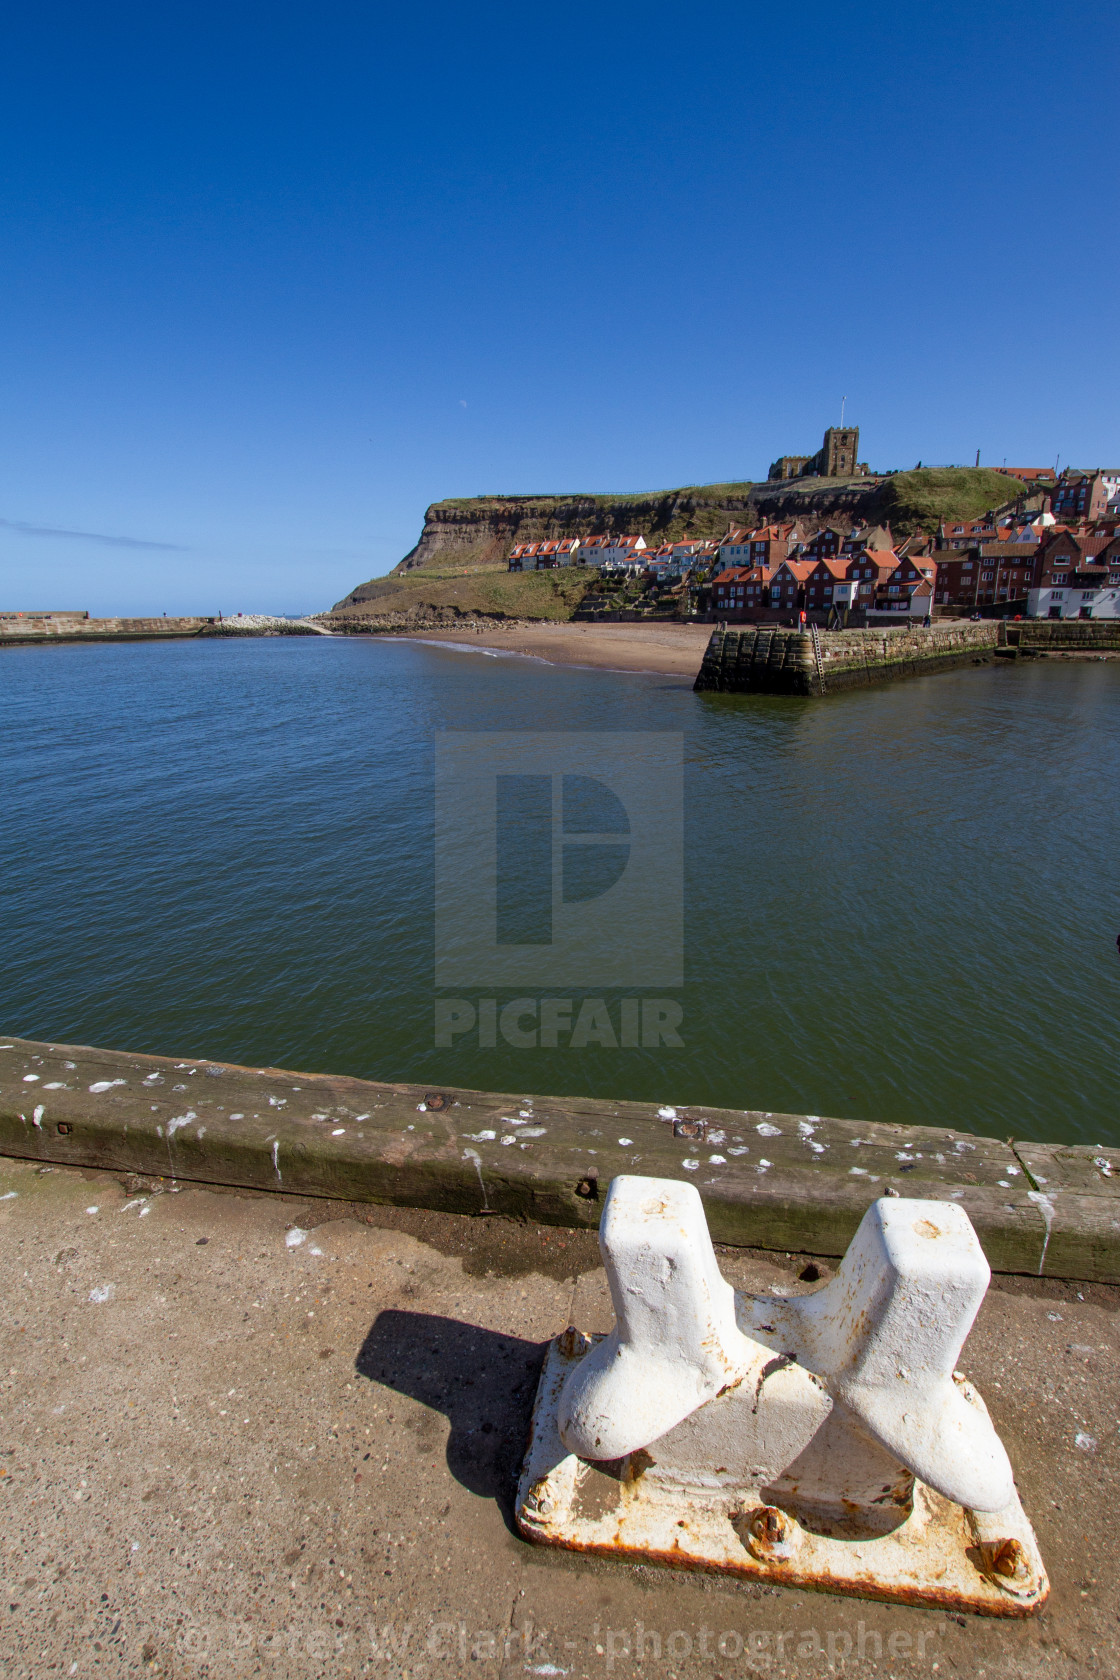 """Whitby,UK,Yorkshire,East coast, View across the Lower Harbour towards Tate Hill Pier and Sands. St Mary's Church in the background, ship Mooring Bollard in the Foreground. Photograph taken on a sunny day, April 2013"" stock image"